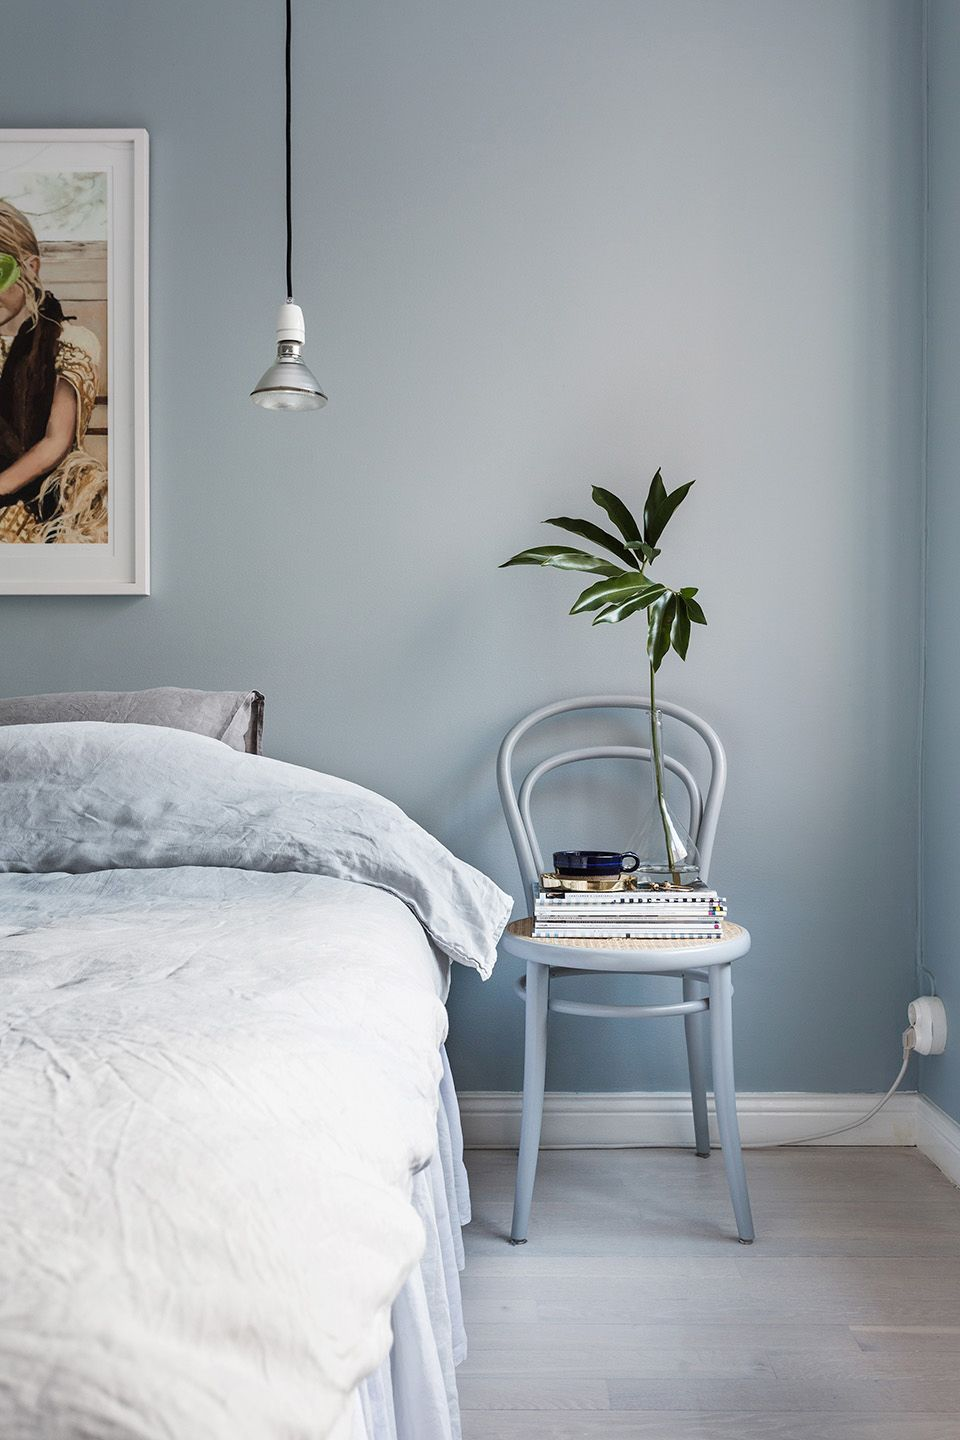 19 Chic Monochromatic Color Schemes - Decorating With One Color